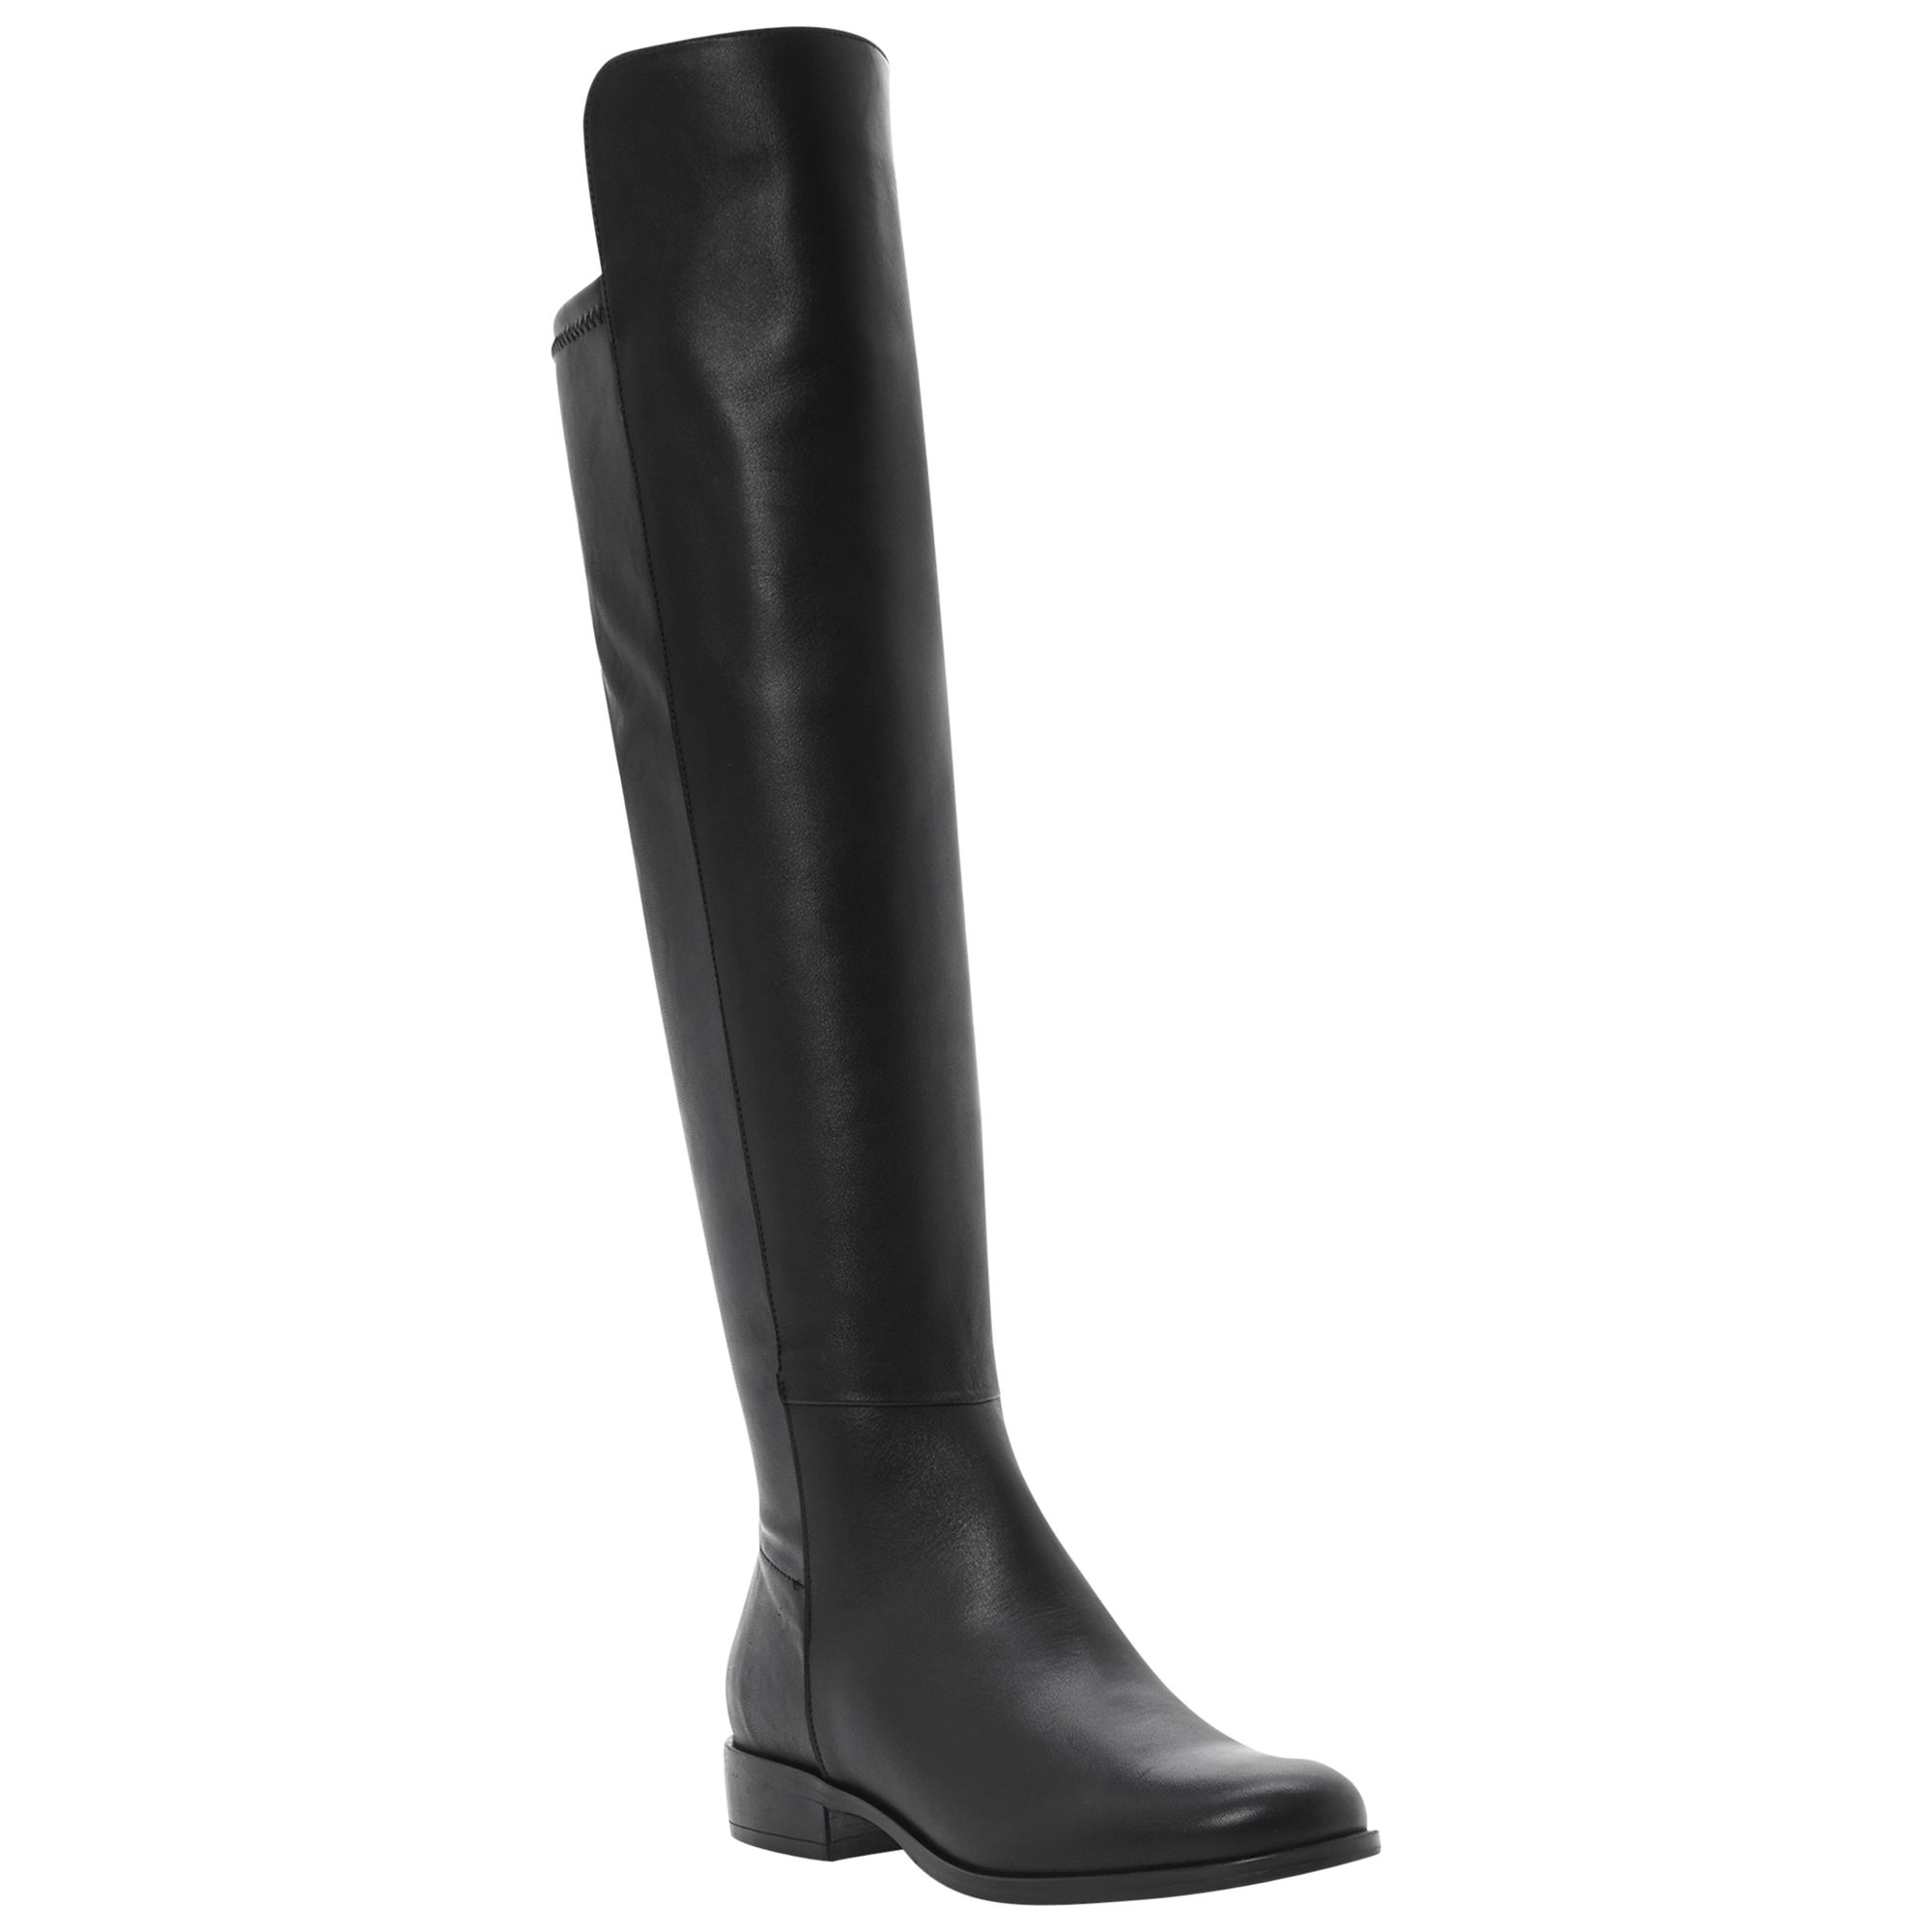 Dune Trish Over The Knee Boots, Black Leather